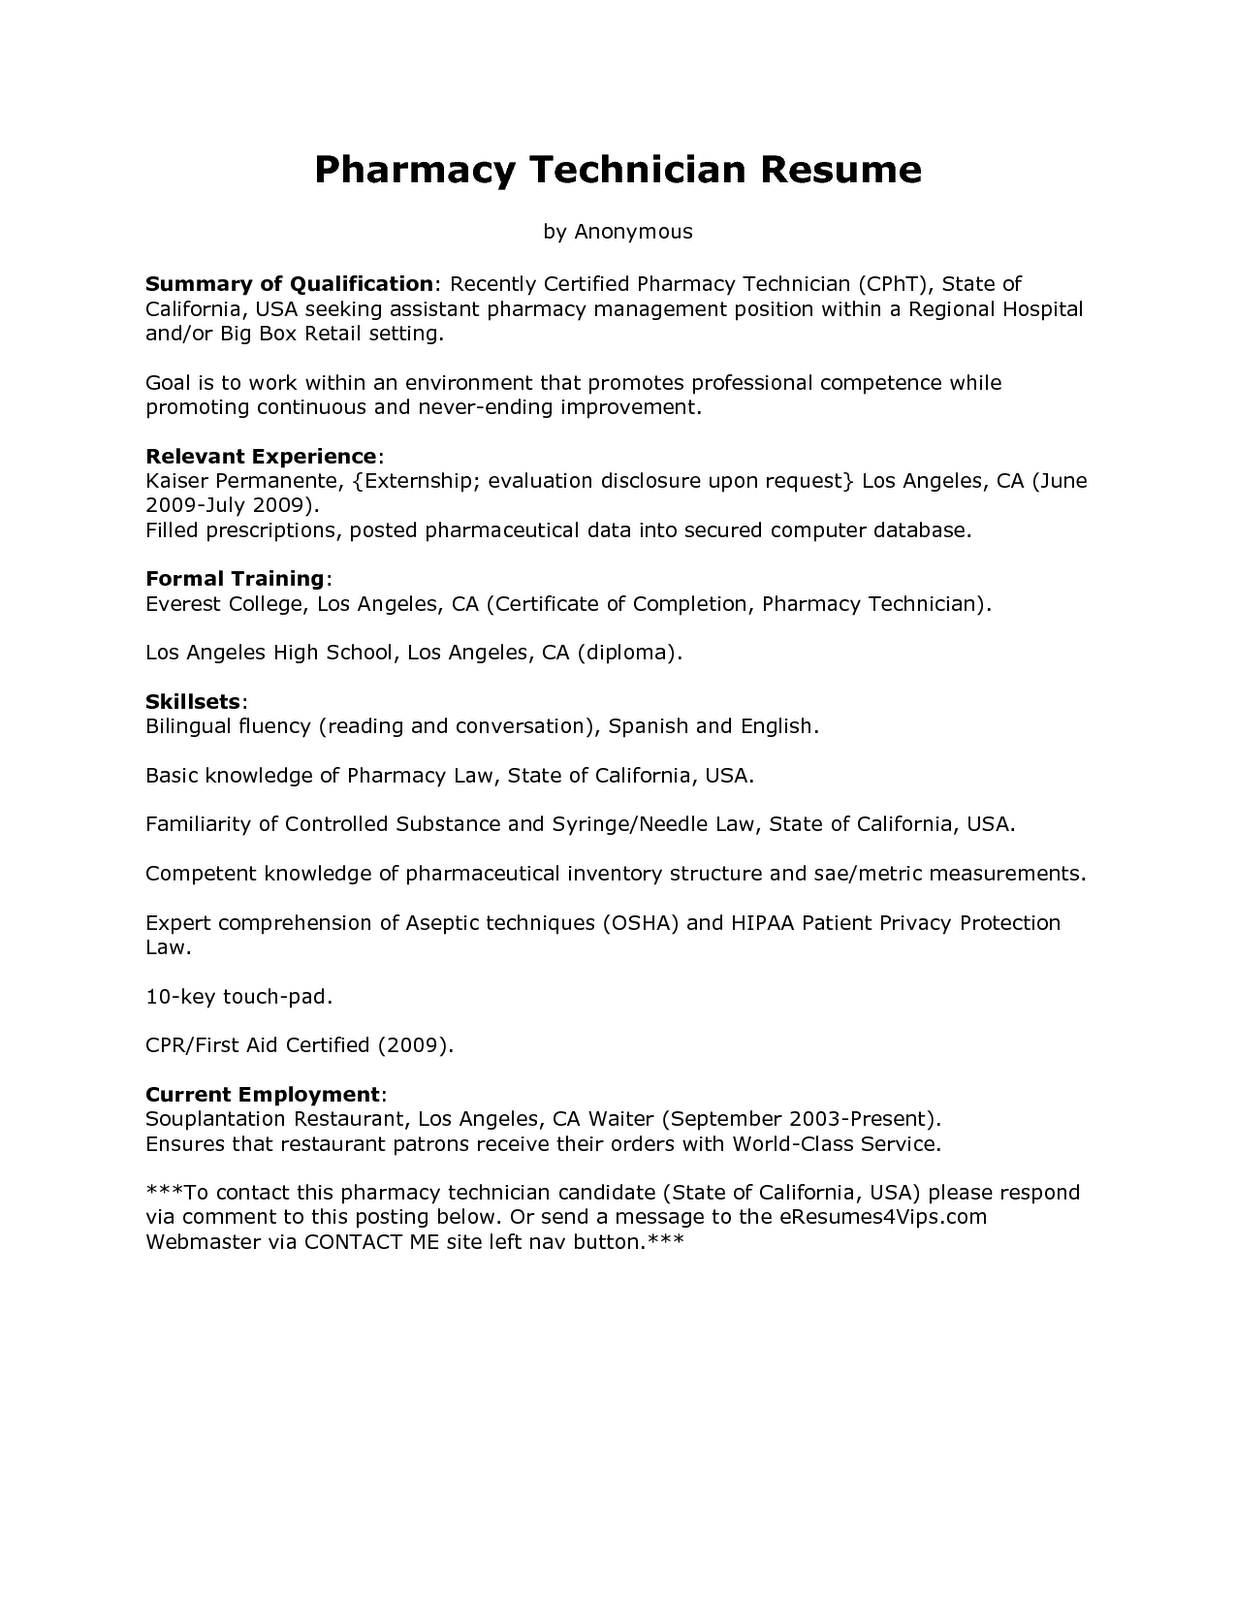 Online Writing Lab personal statement pharmacy assistant – Personal Statement Examples for Resumes